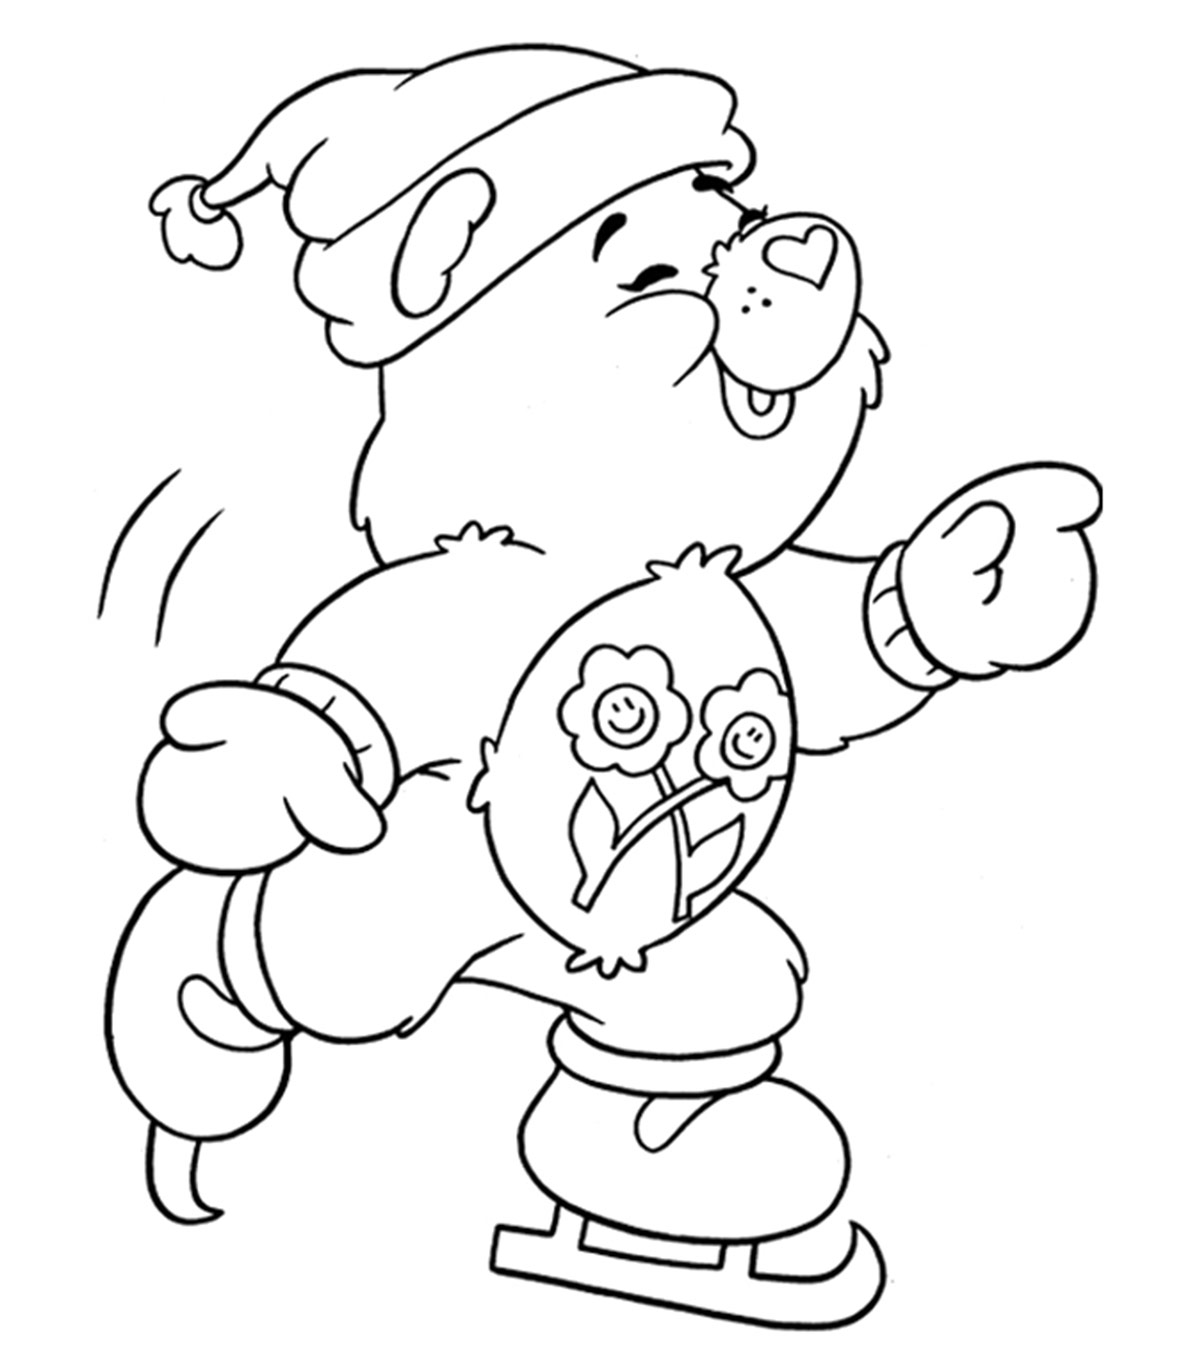 Season and Weather Coloring Pages - MomJunction   winter coloring pages  free